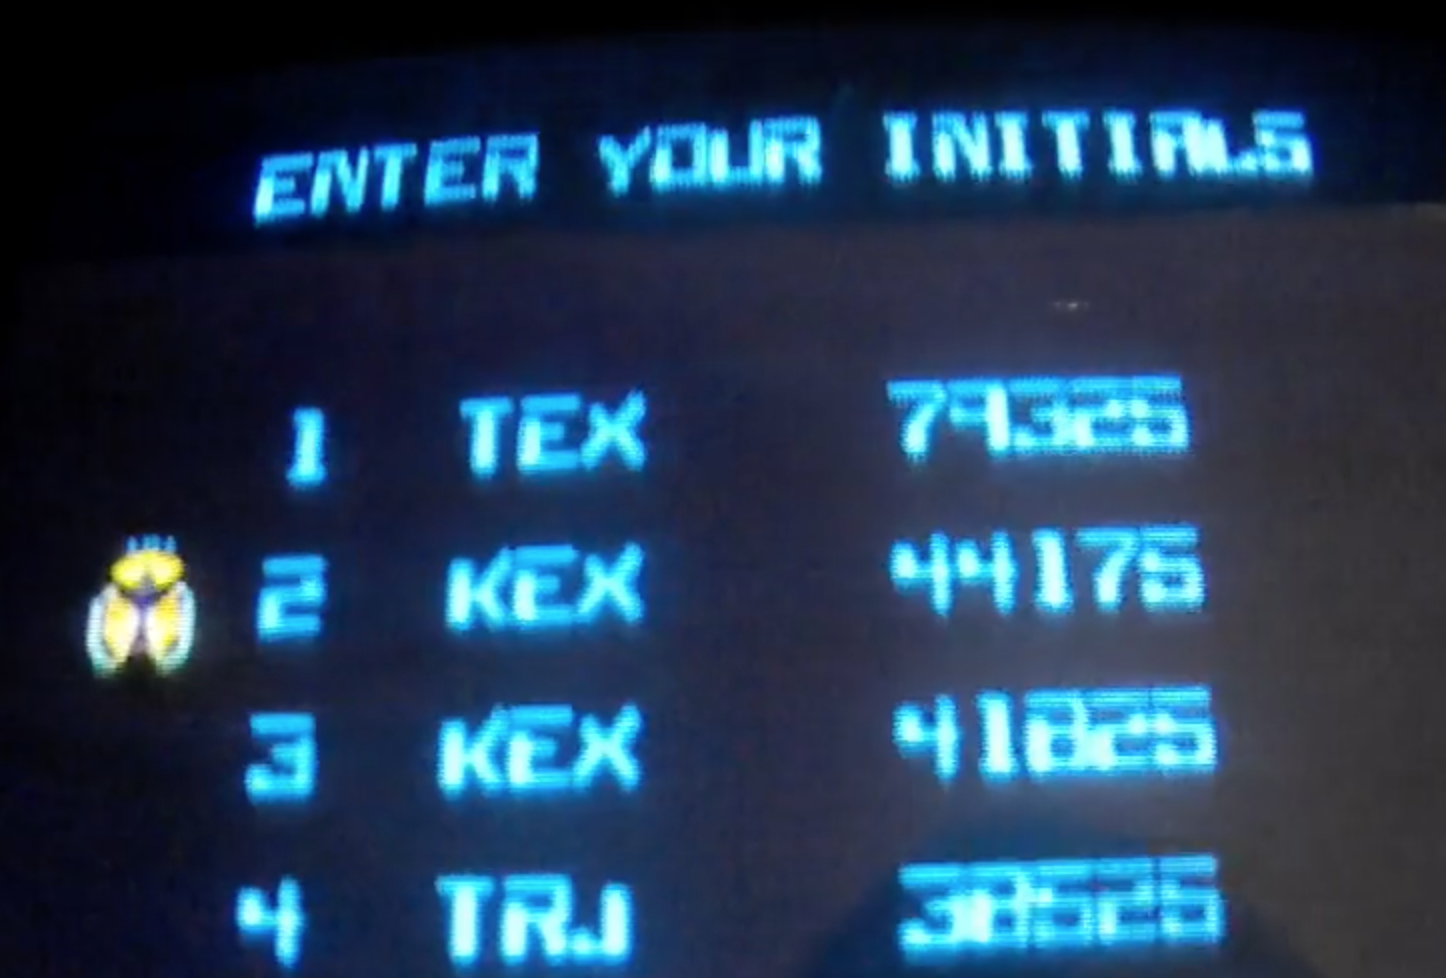 KnexPaerdz: Journey (Arcade) 44,175 points on 2019-02-04 08:21:09